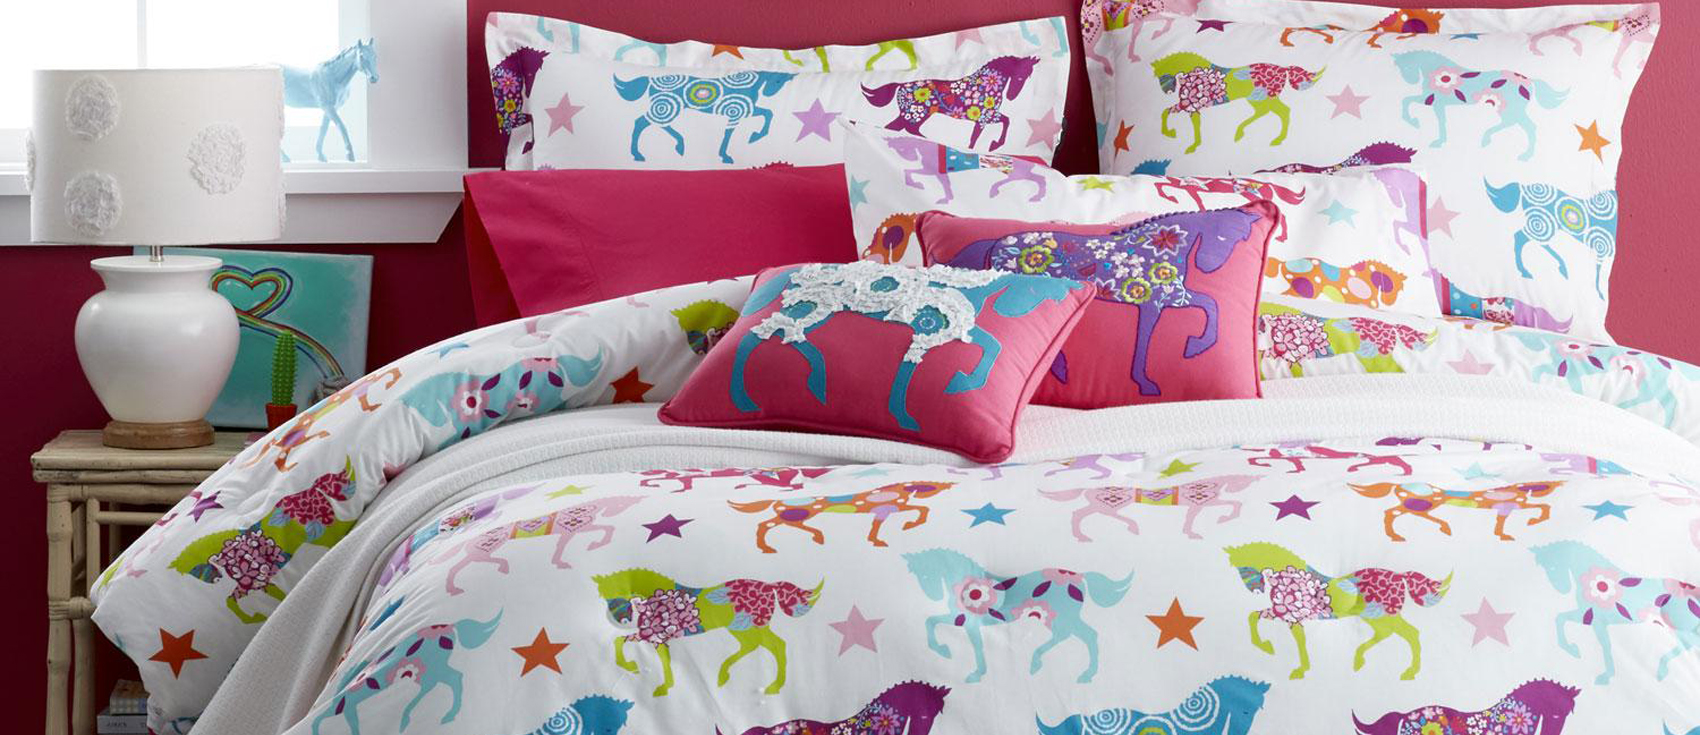 Teen Kids Neiman Marcus Bedding Horchow. Products here may not be the best, but each product is carefully selected by us. We are not the top online store, but we provide better service. If you are interested in Teen Kids Neiman Marcus Bedding Horchow, we are sure you find the right place.